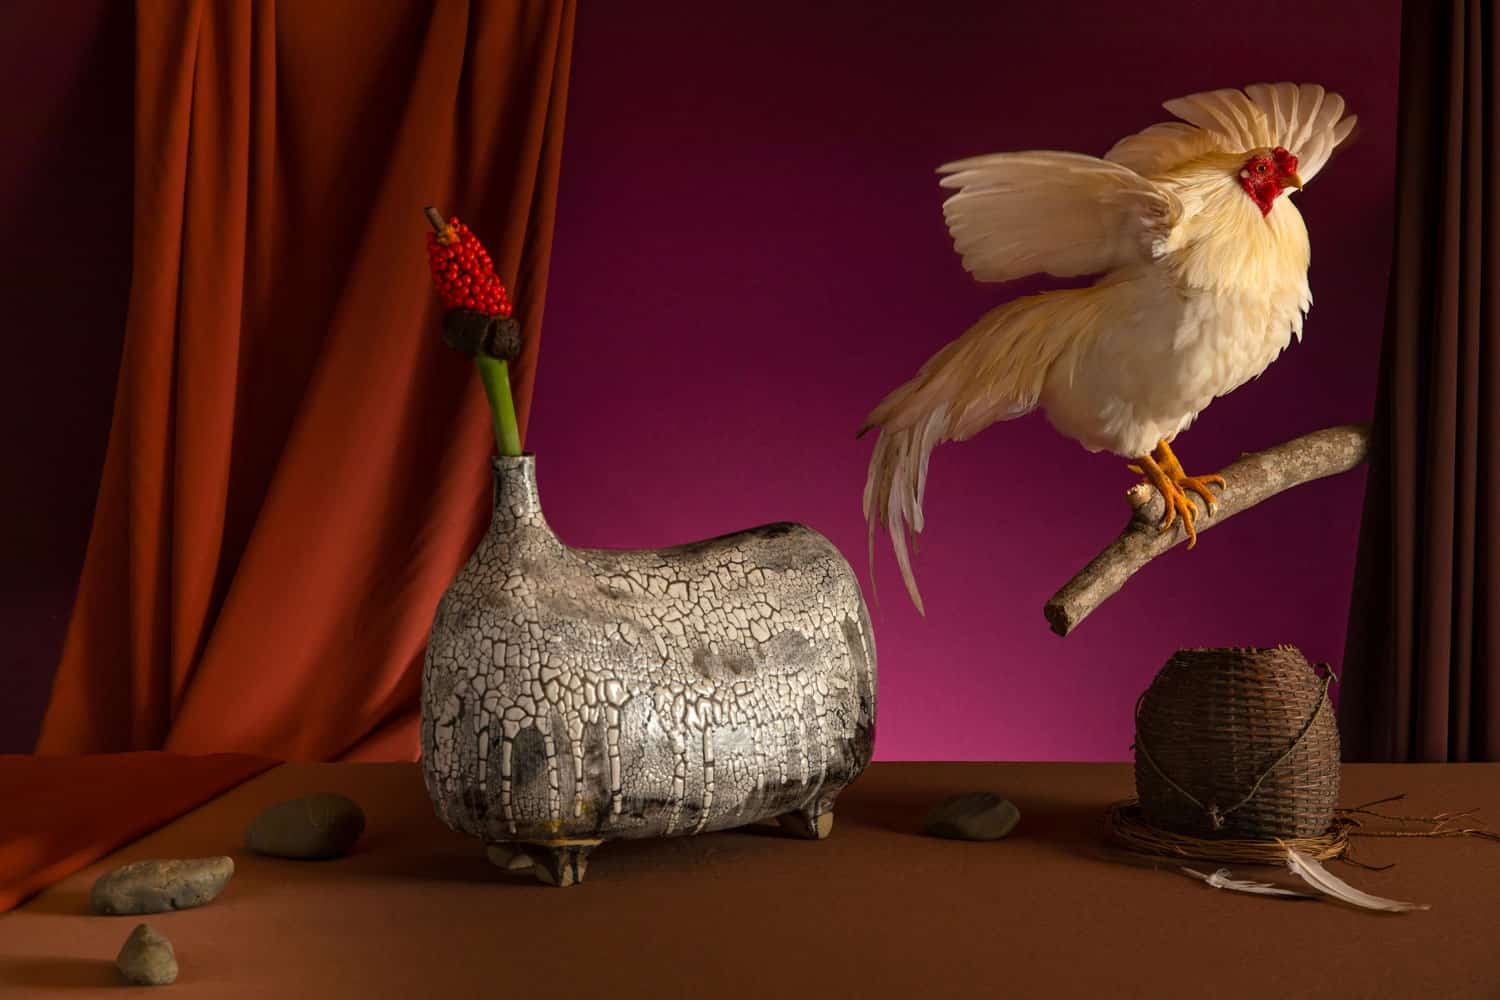 still_life_art_photography_photographer_vietnam_flower_animal_vietnam_chicken0